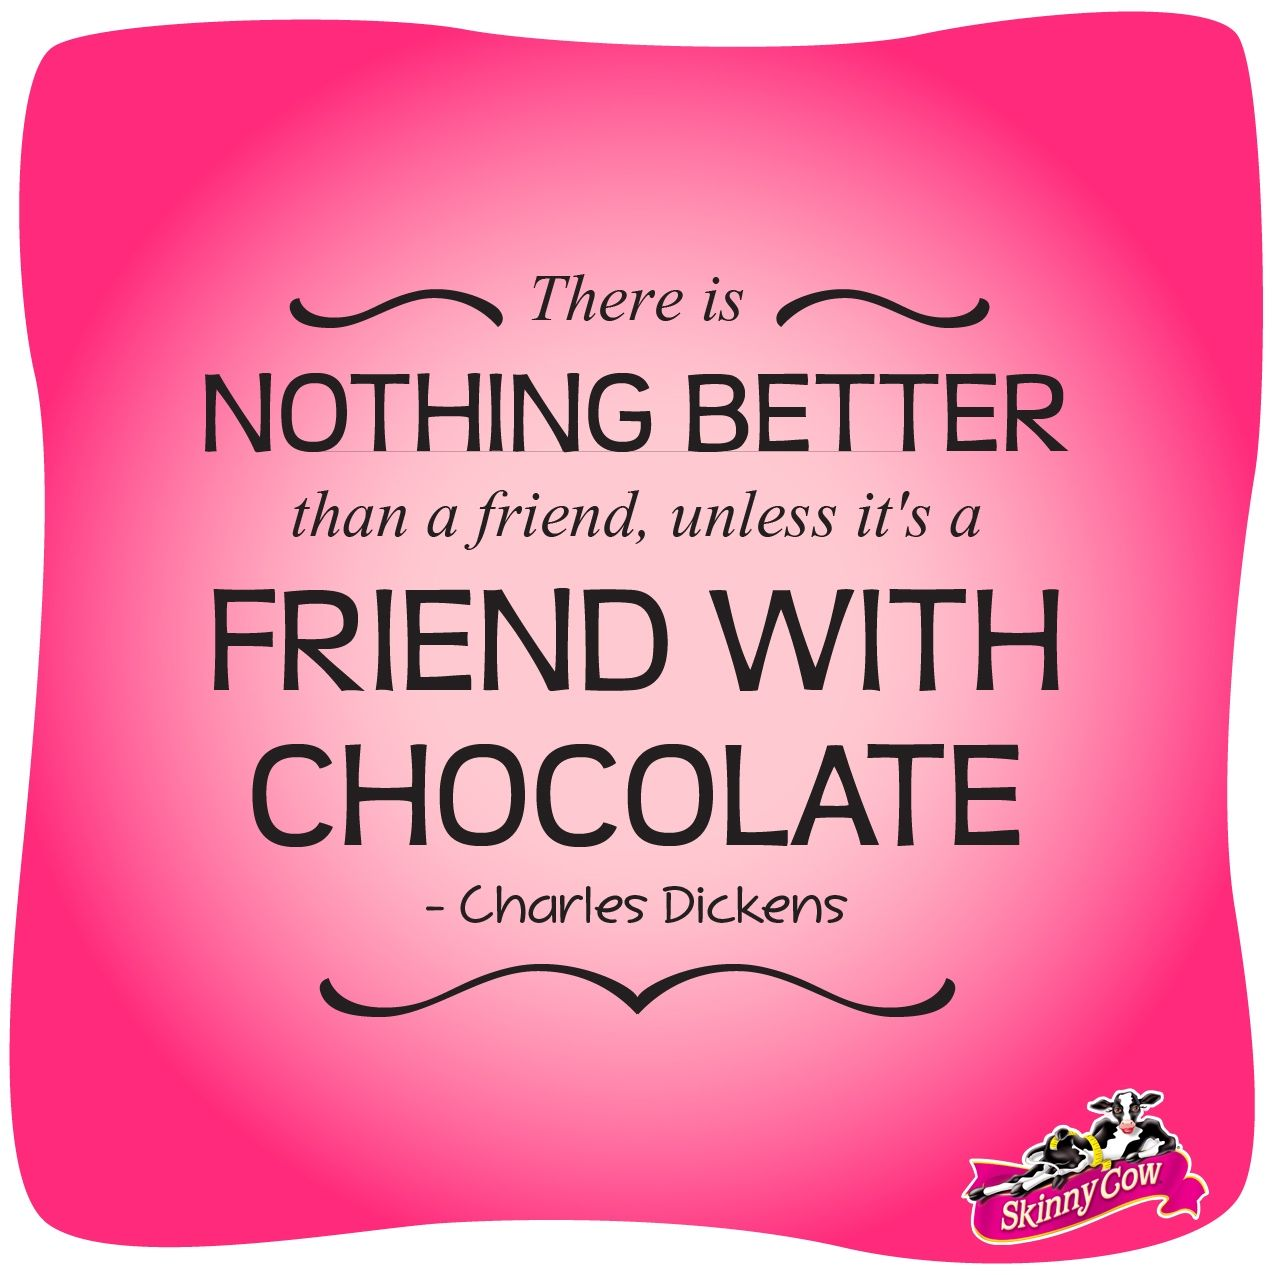 I couldn't have said it any better! #chocolate #quote #friends